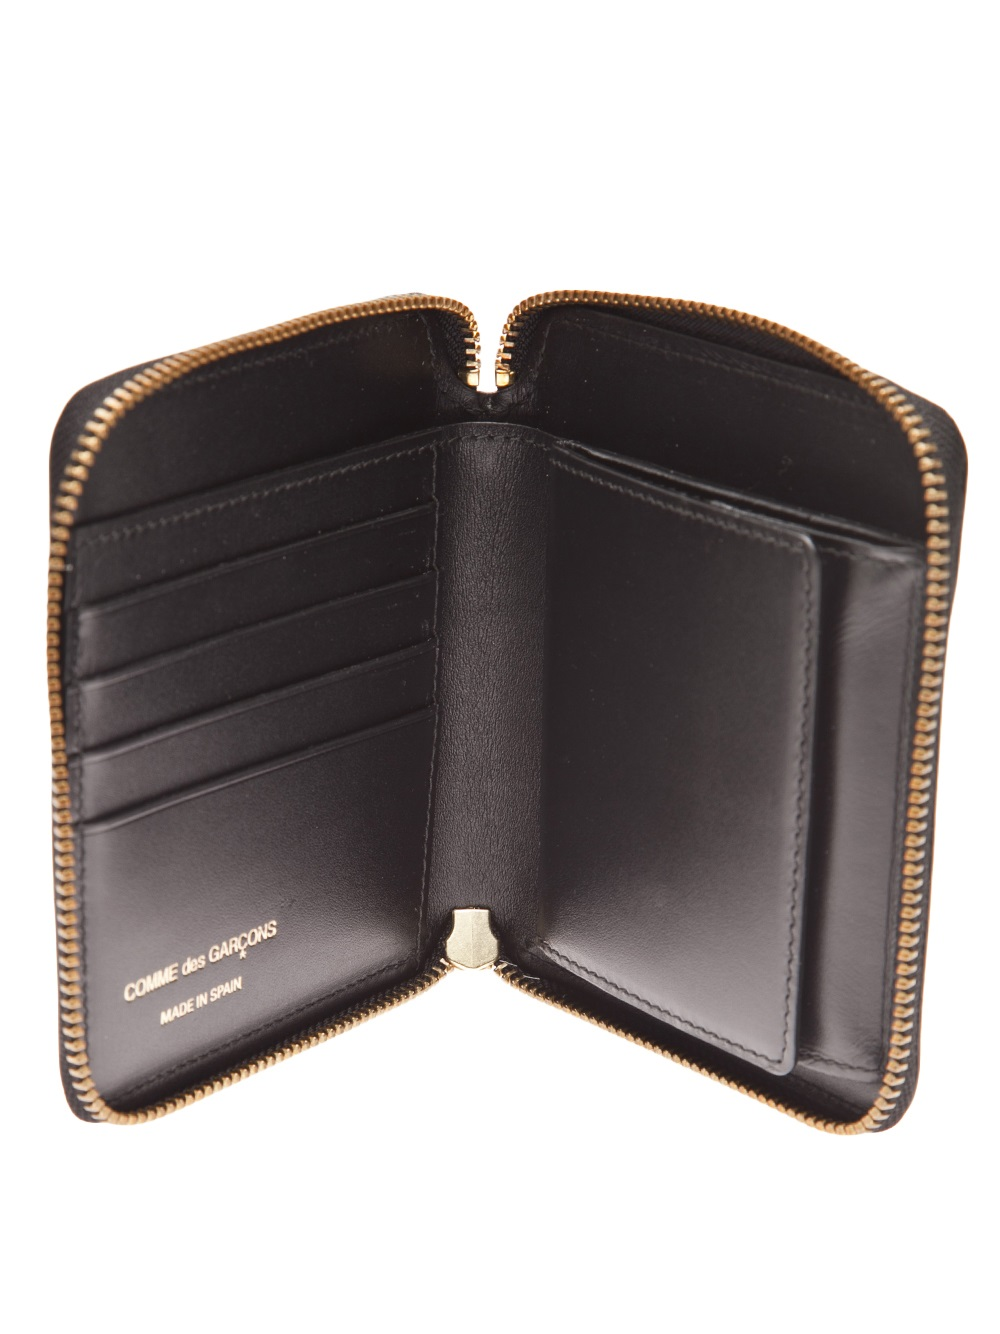 zip around wallet - Metallic Comme Des Gar?ons